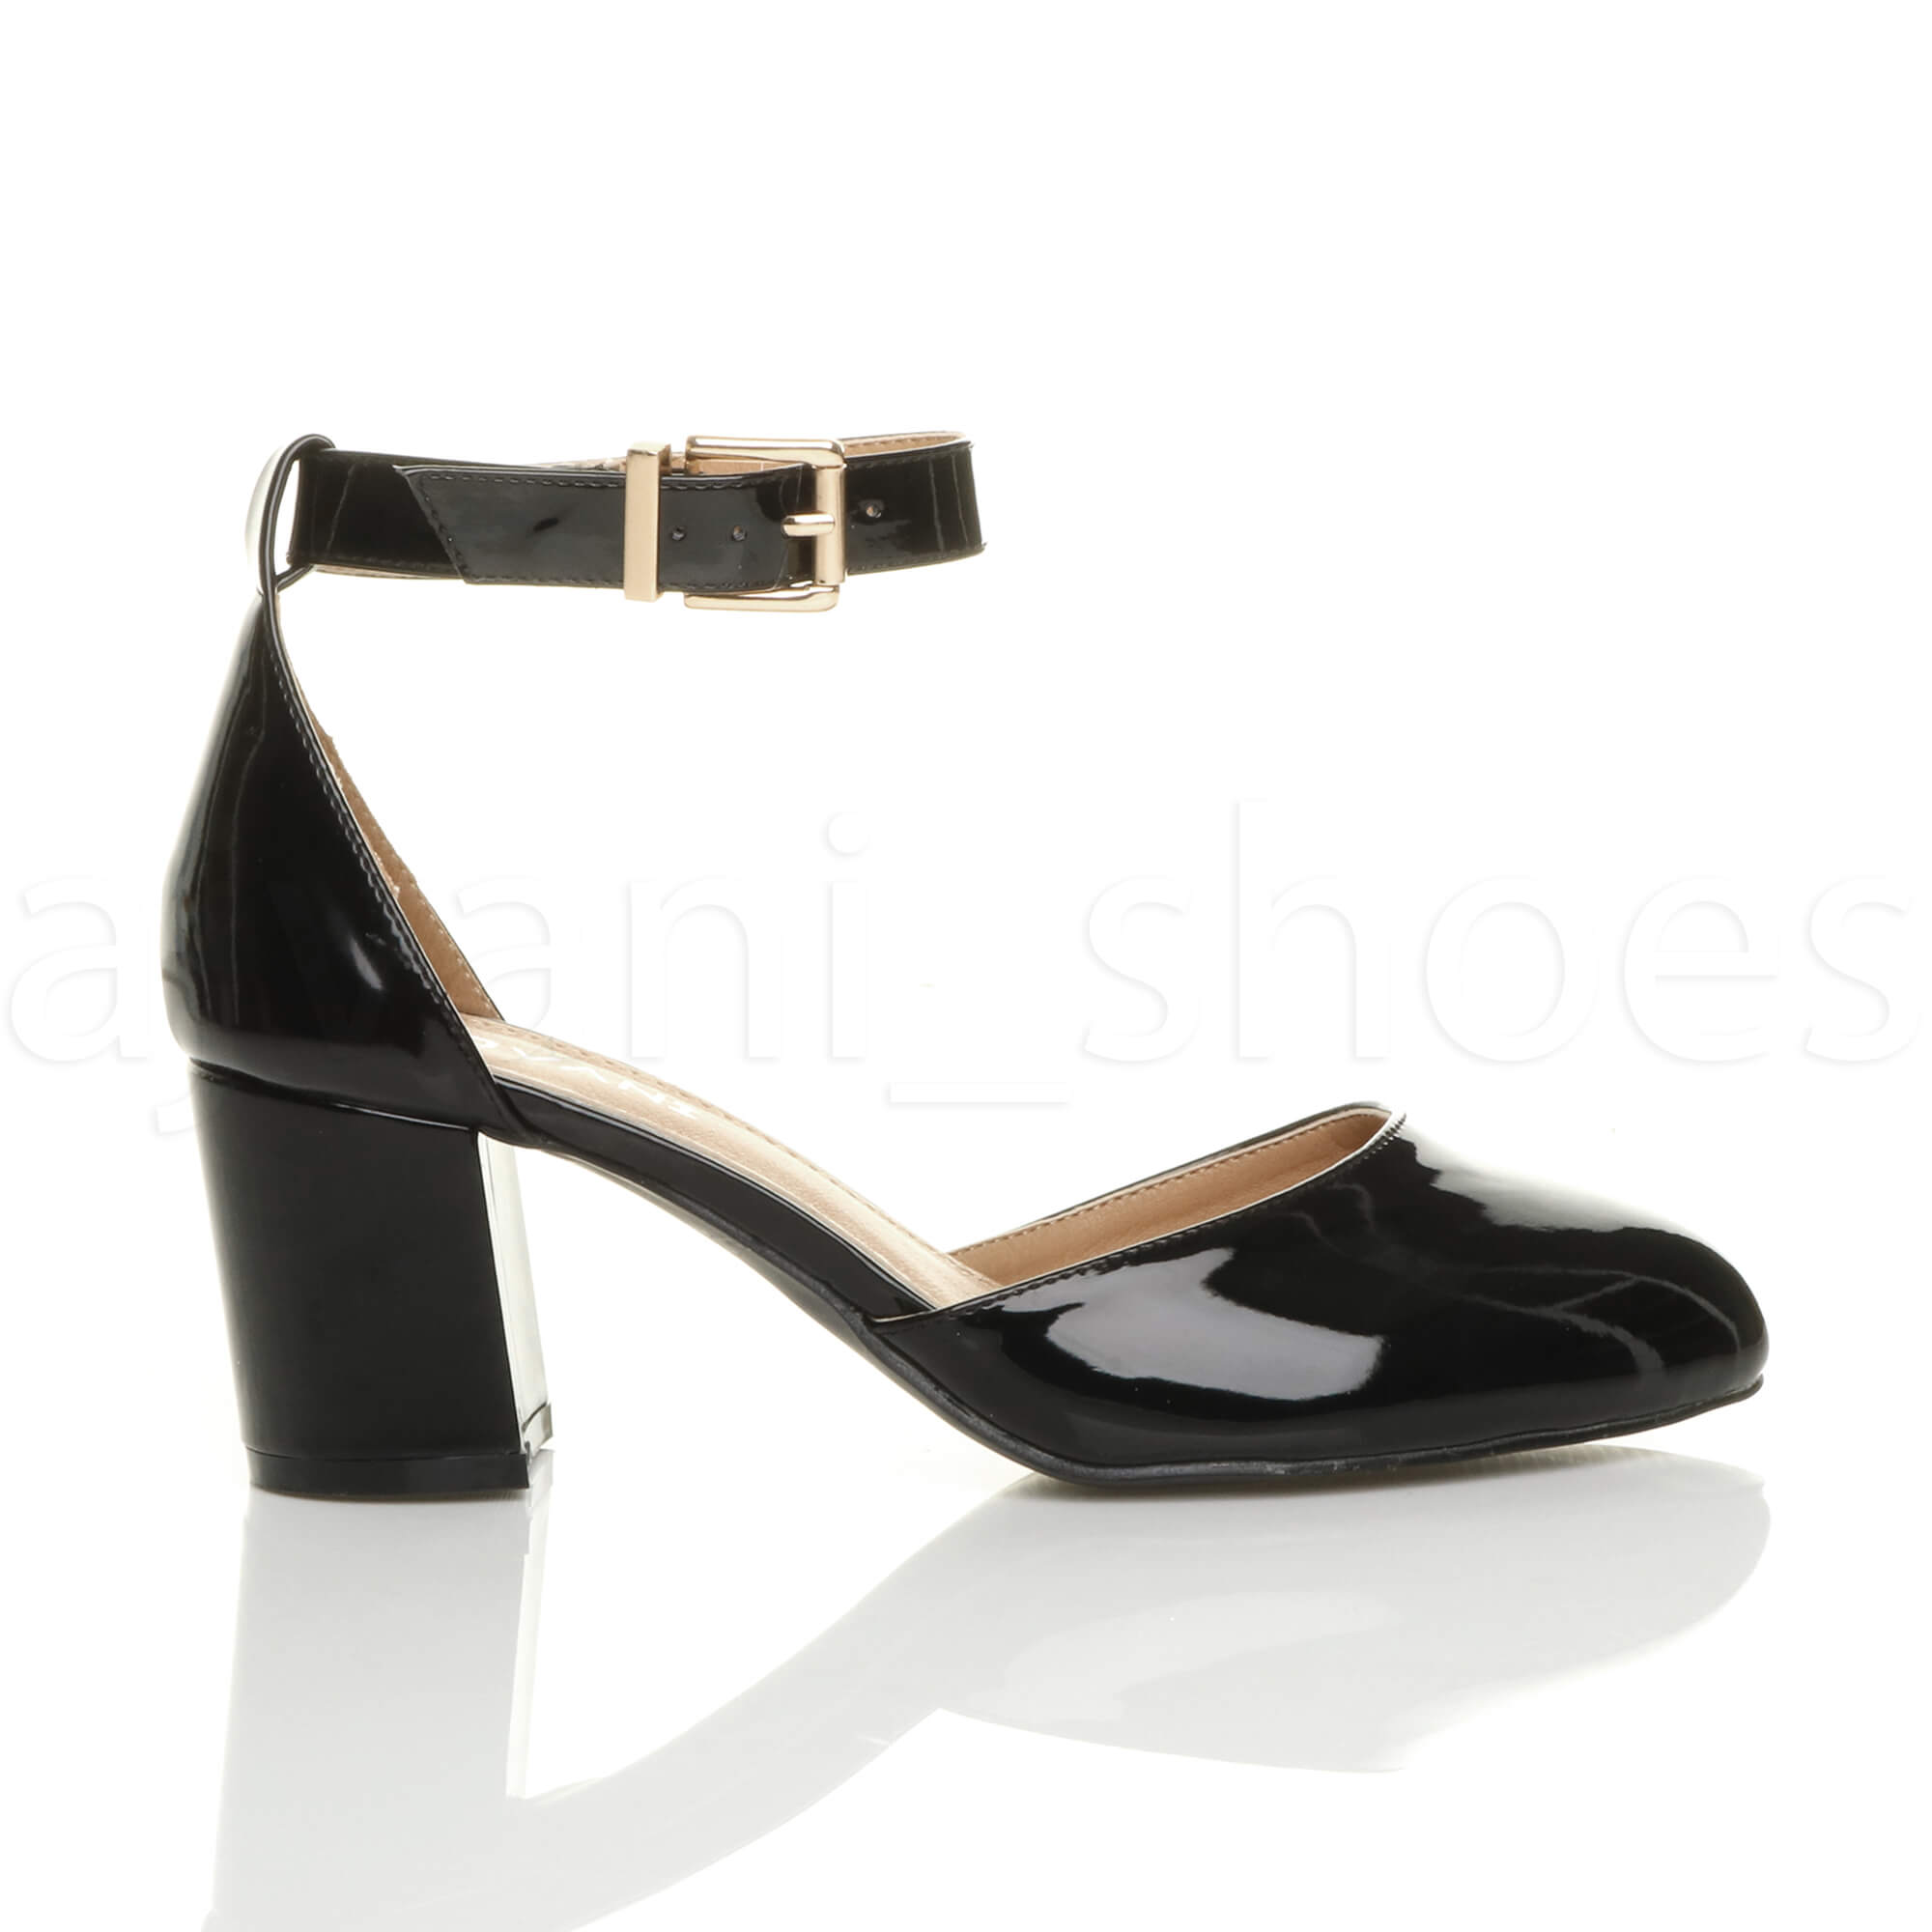 Black Patent Court Shoes With Strap